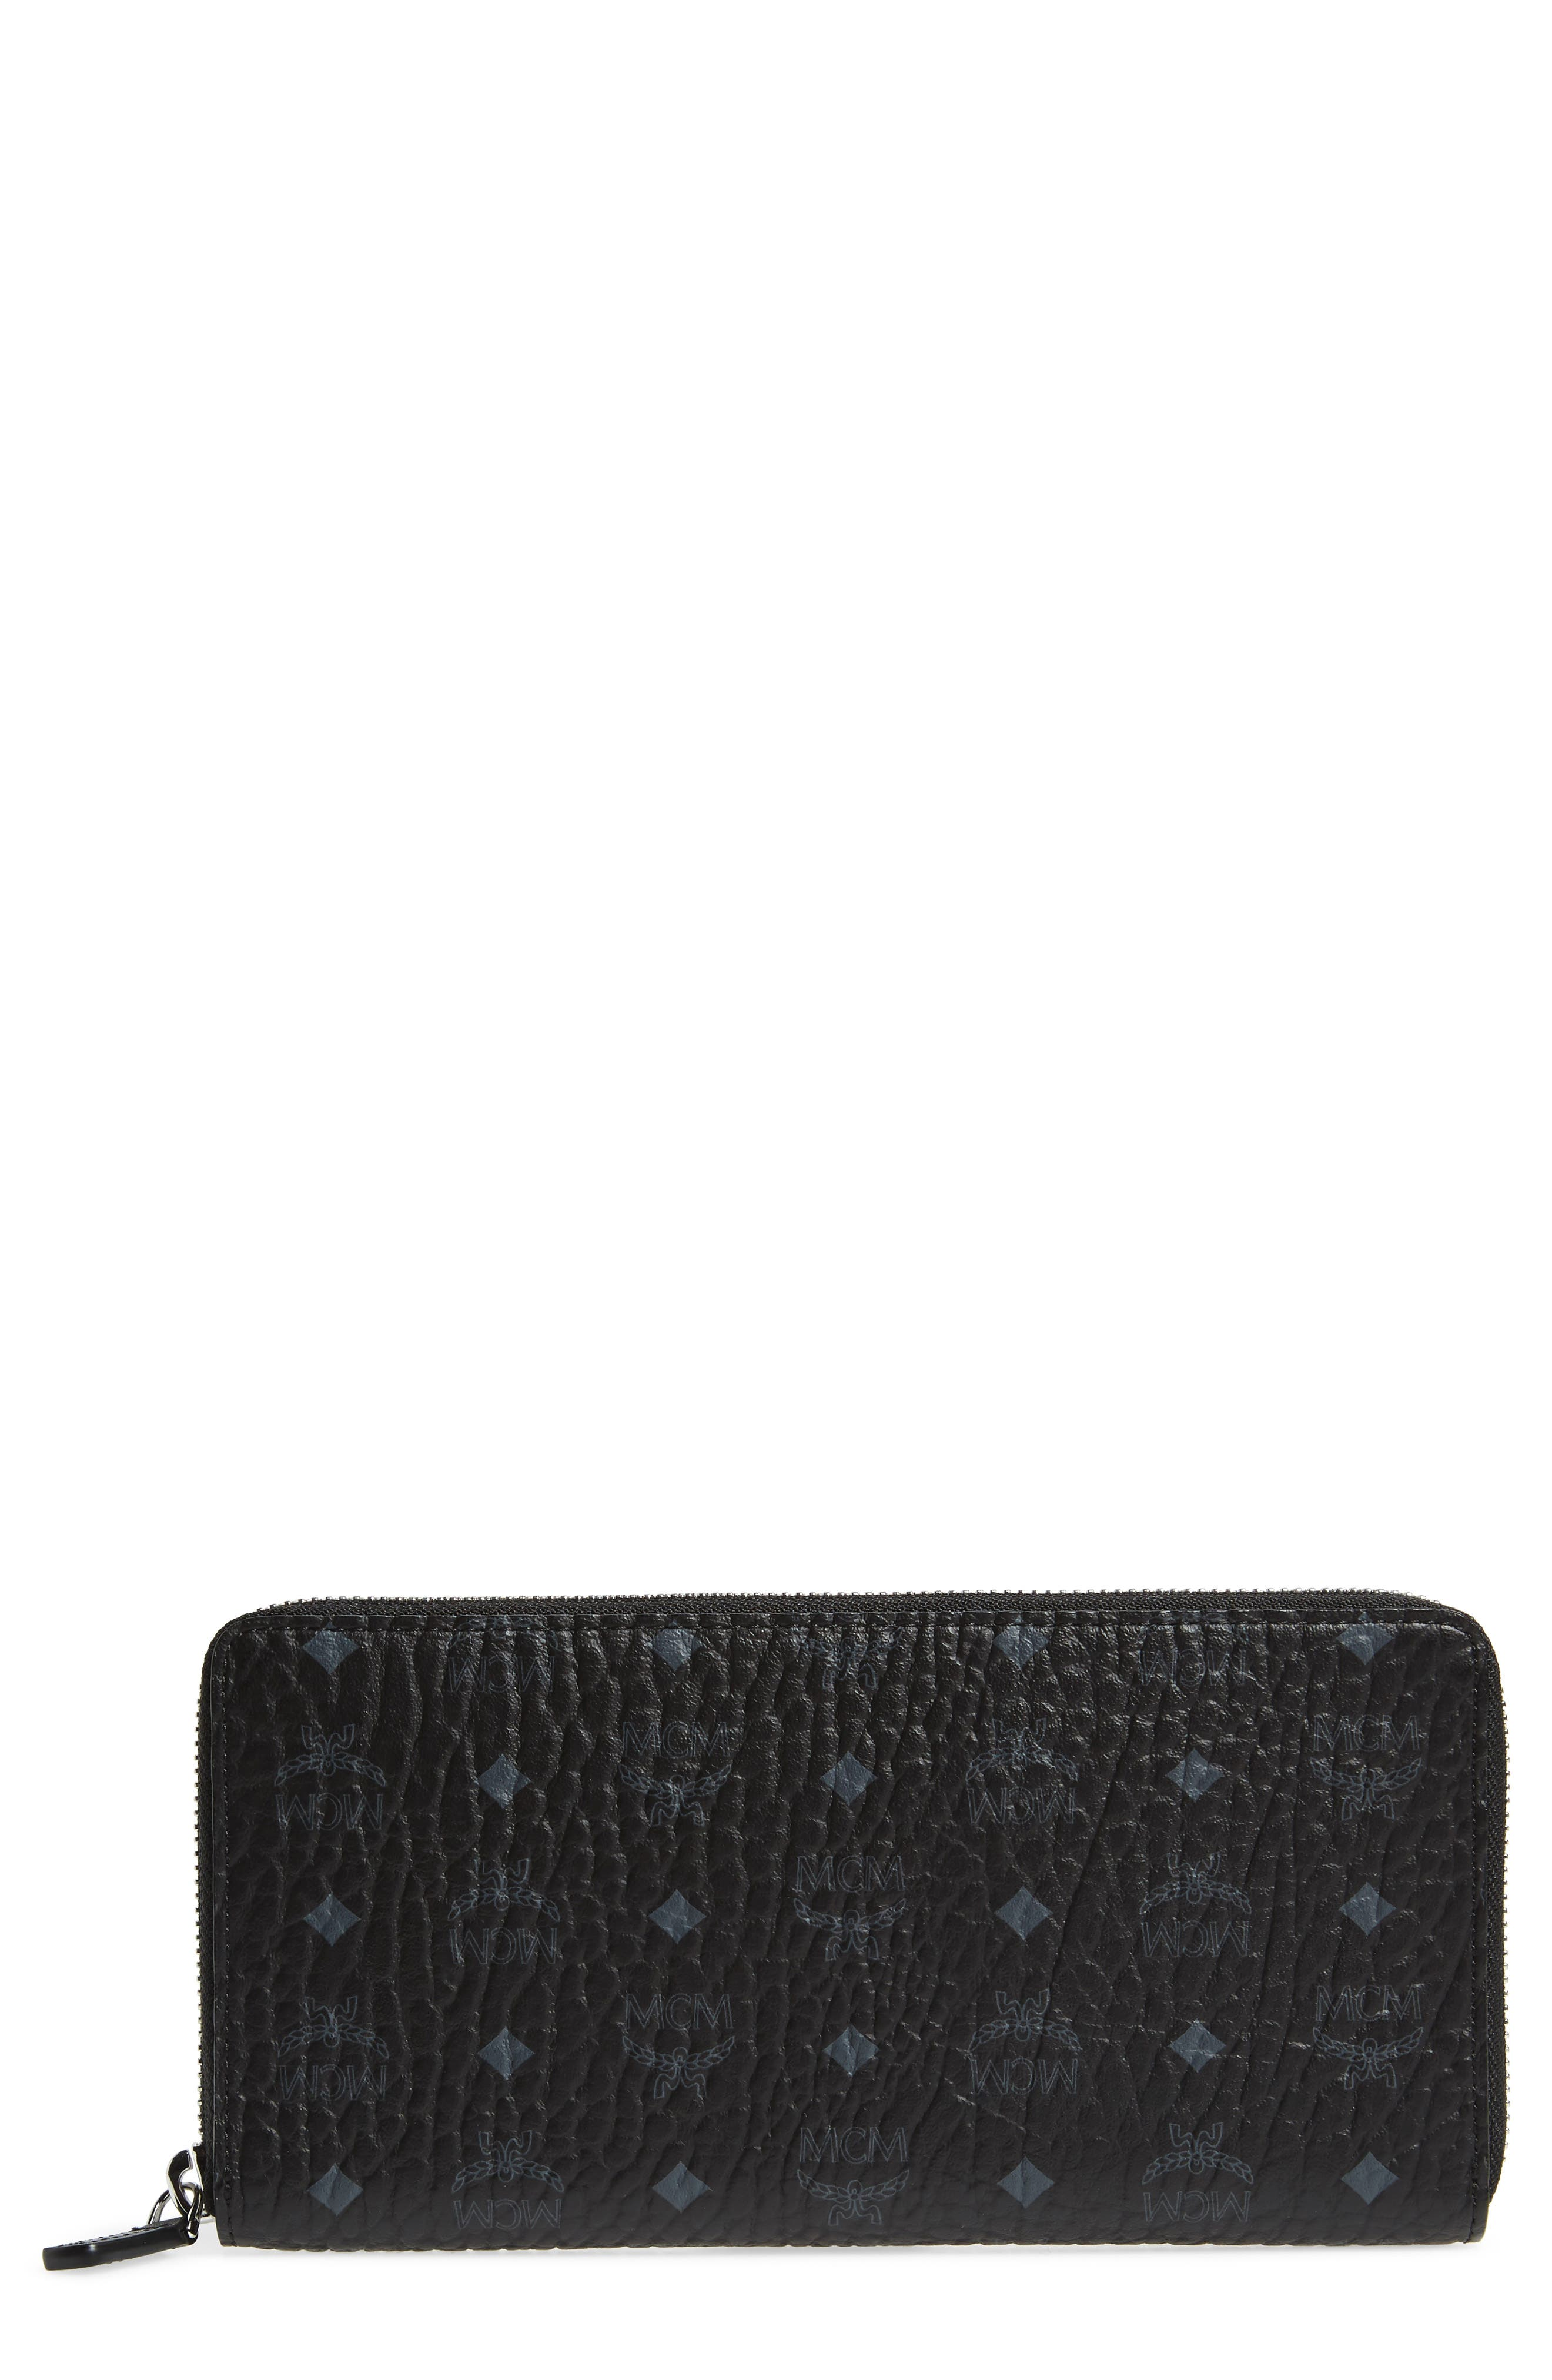 Visetos Original Zip Around Coated Canvas Wallet,                             Main thumbnail 1, color,                             BLACK